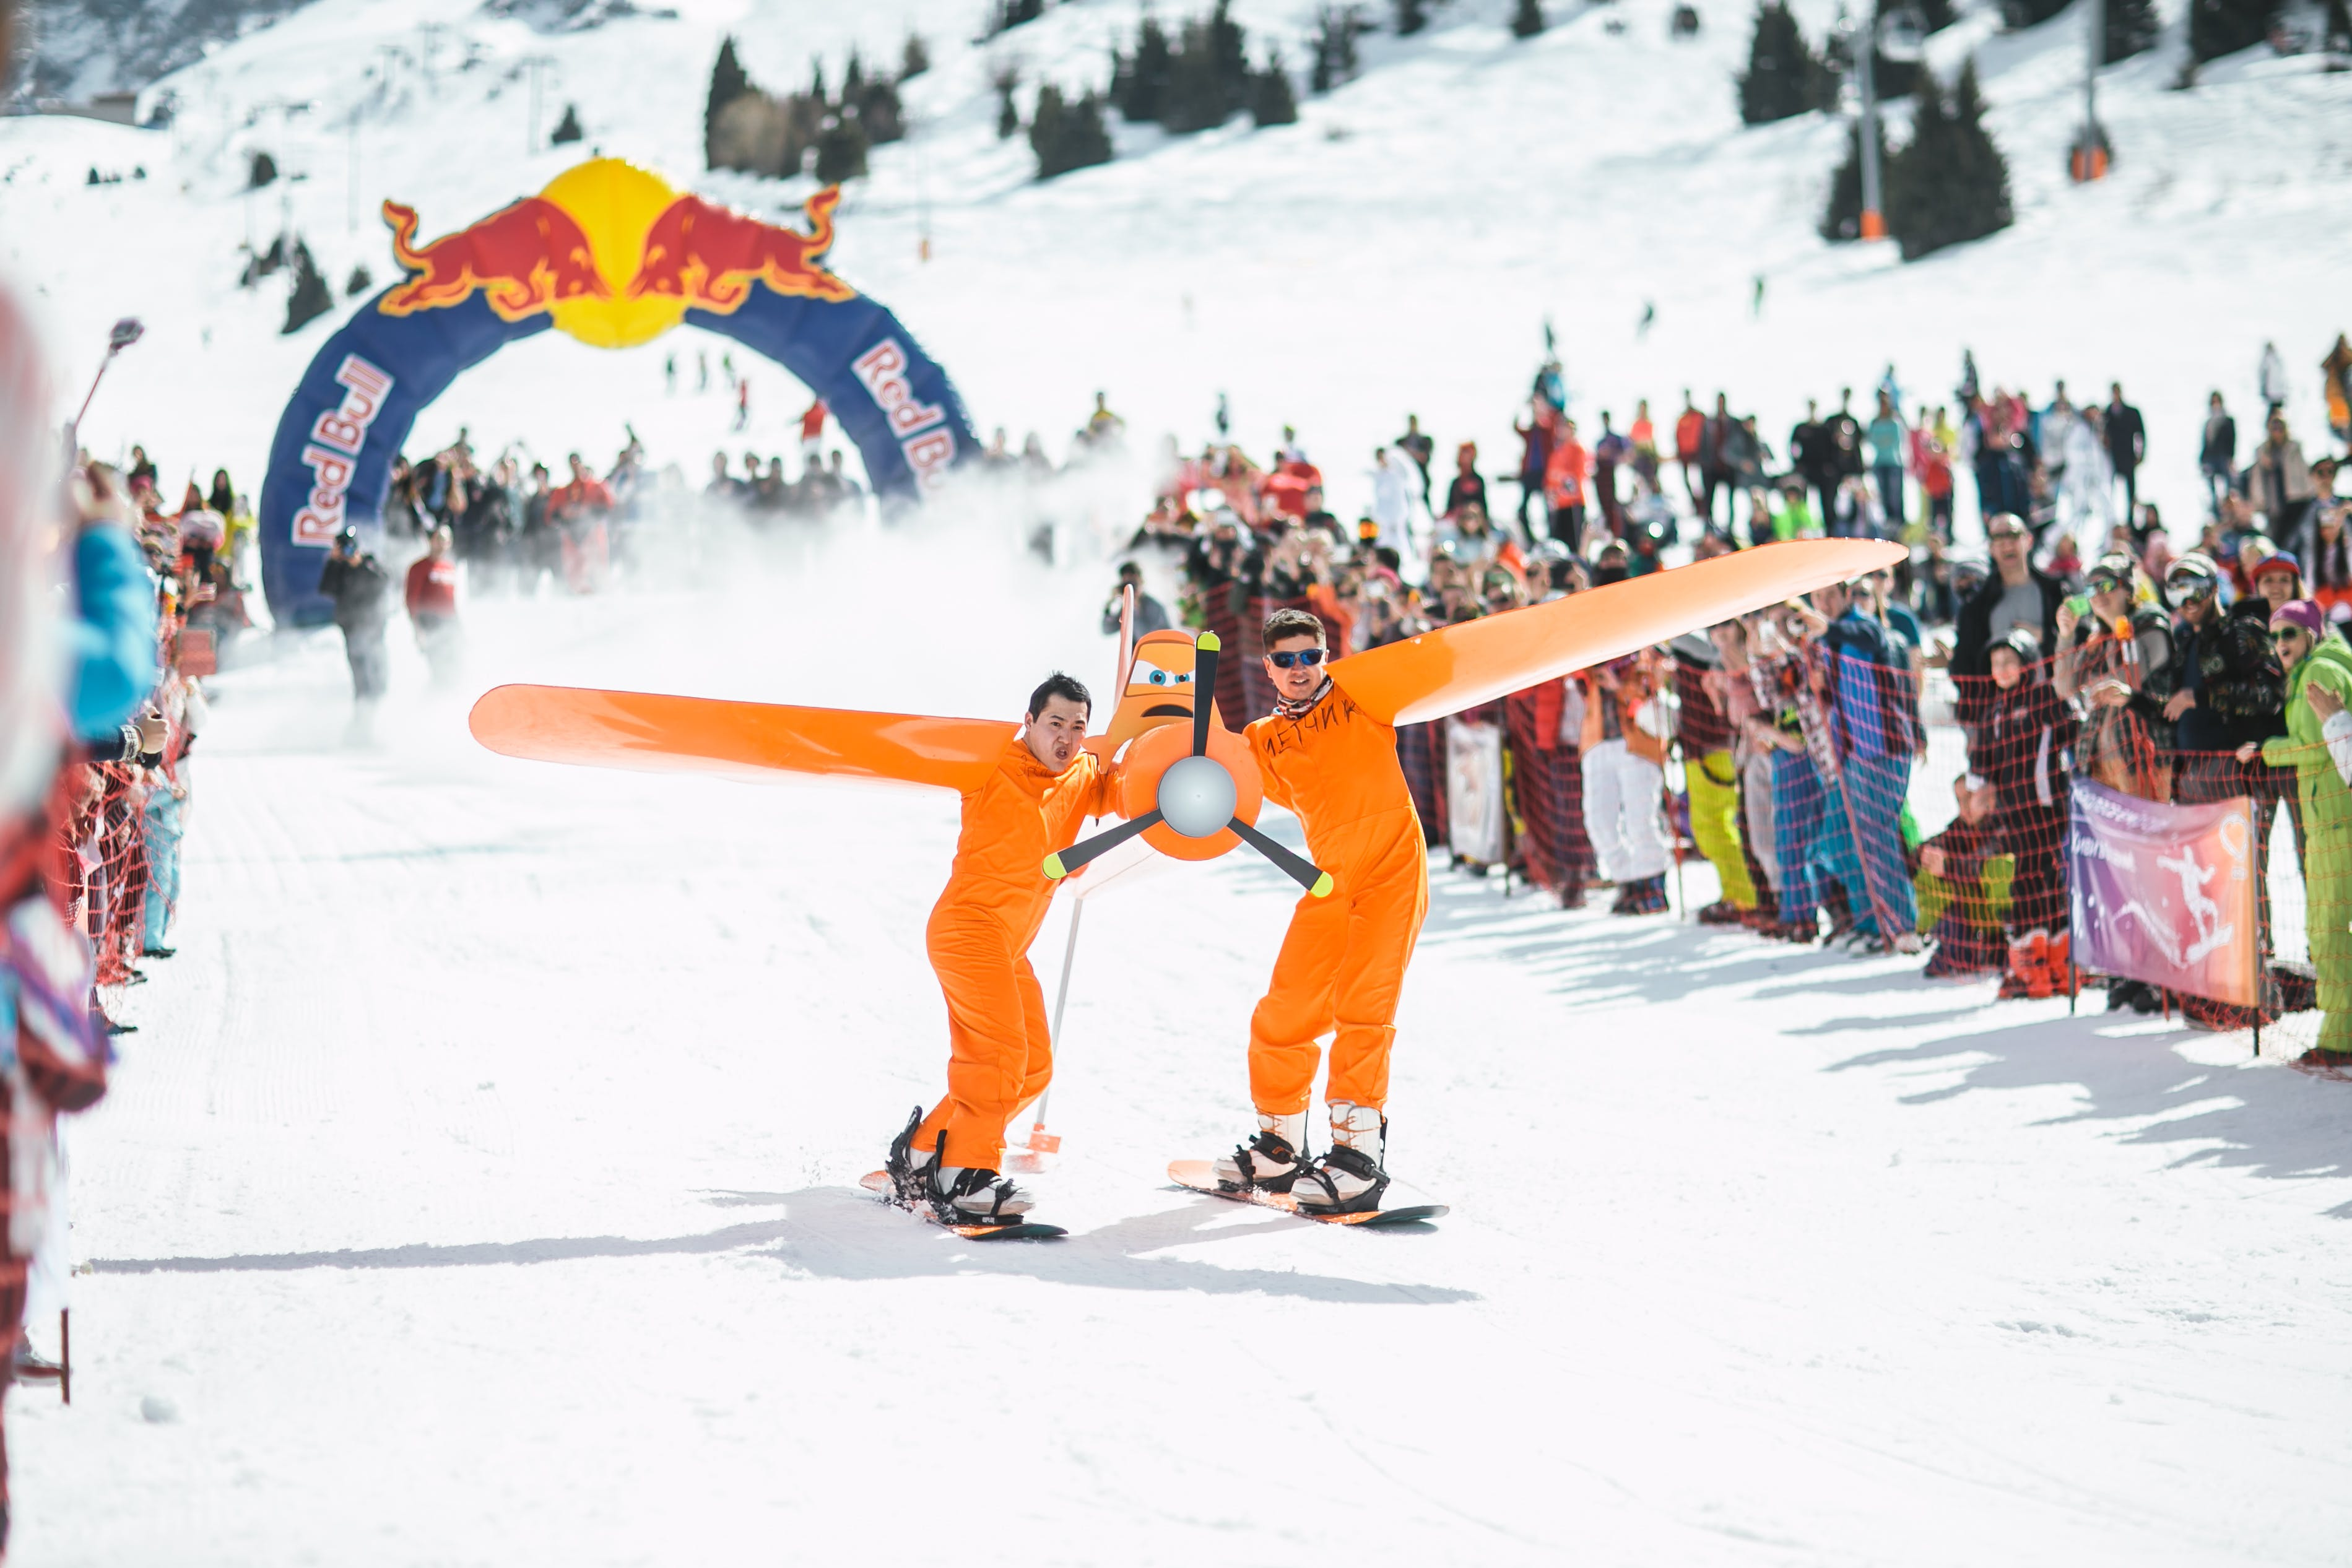 Photography of Men in Orange Suits Ridding Snowboard